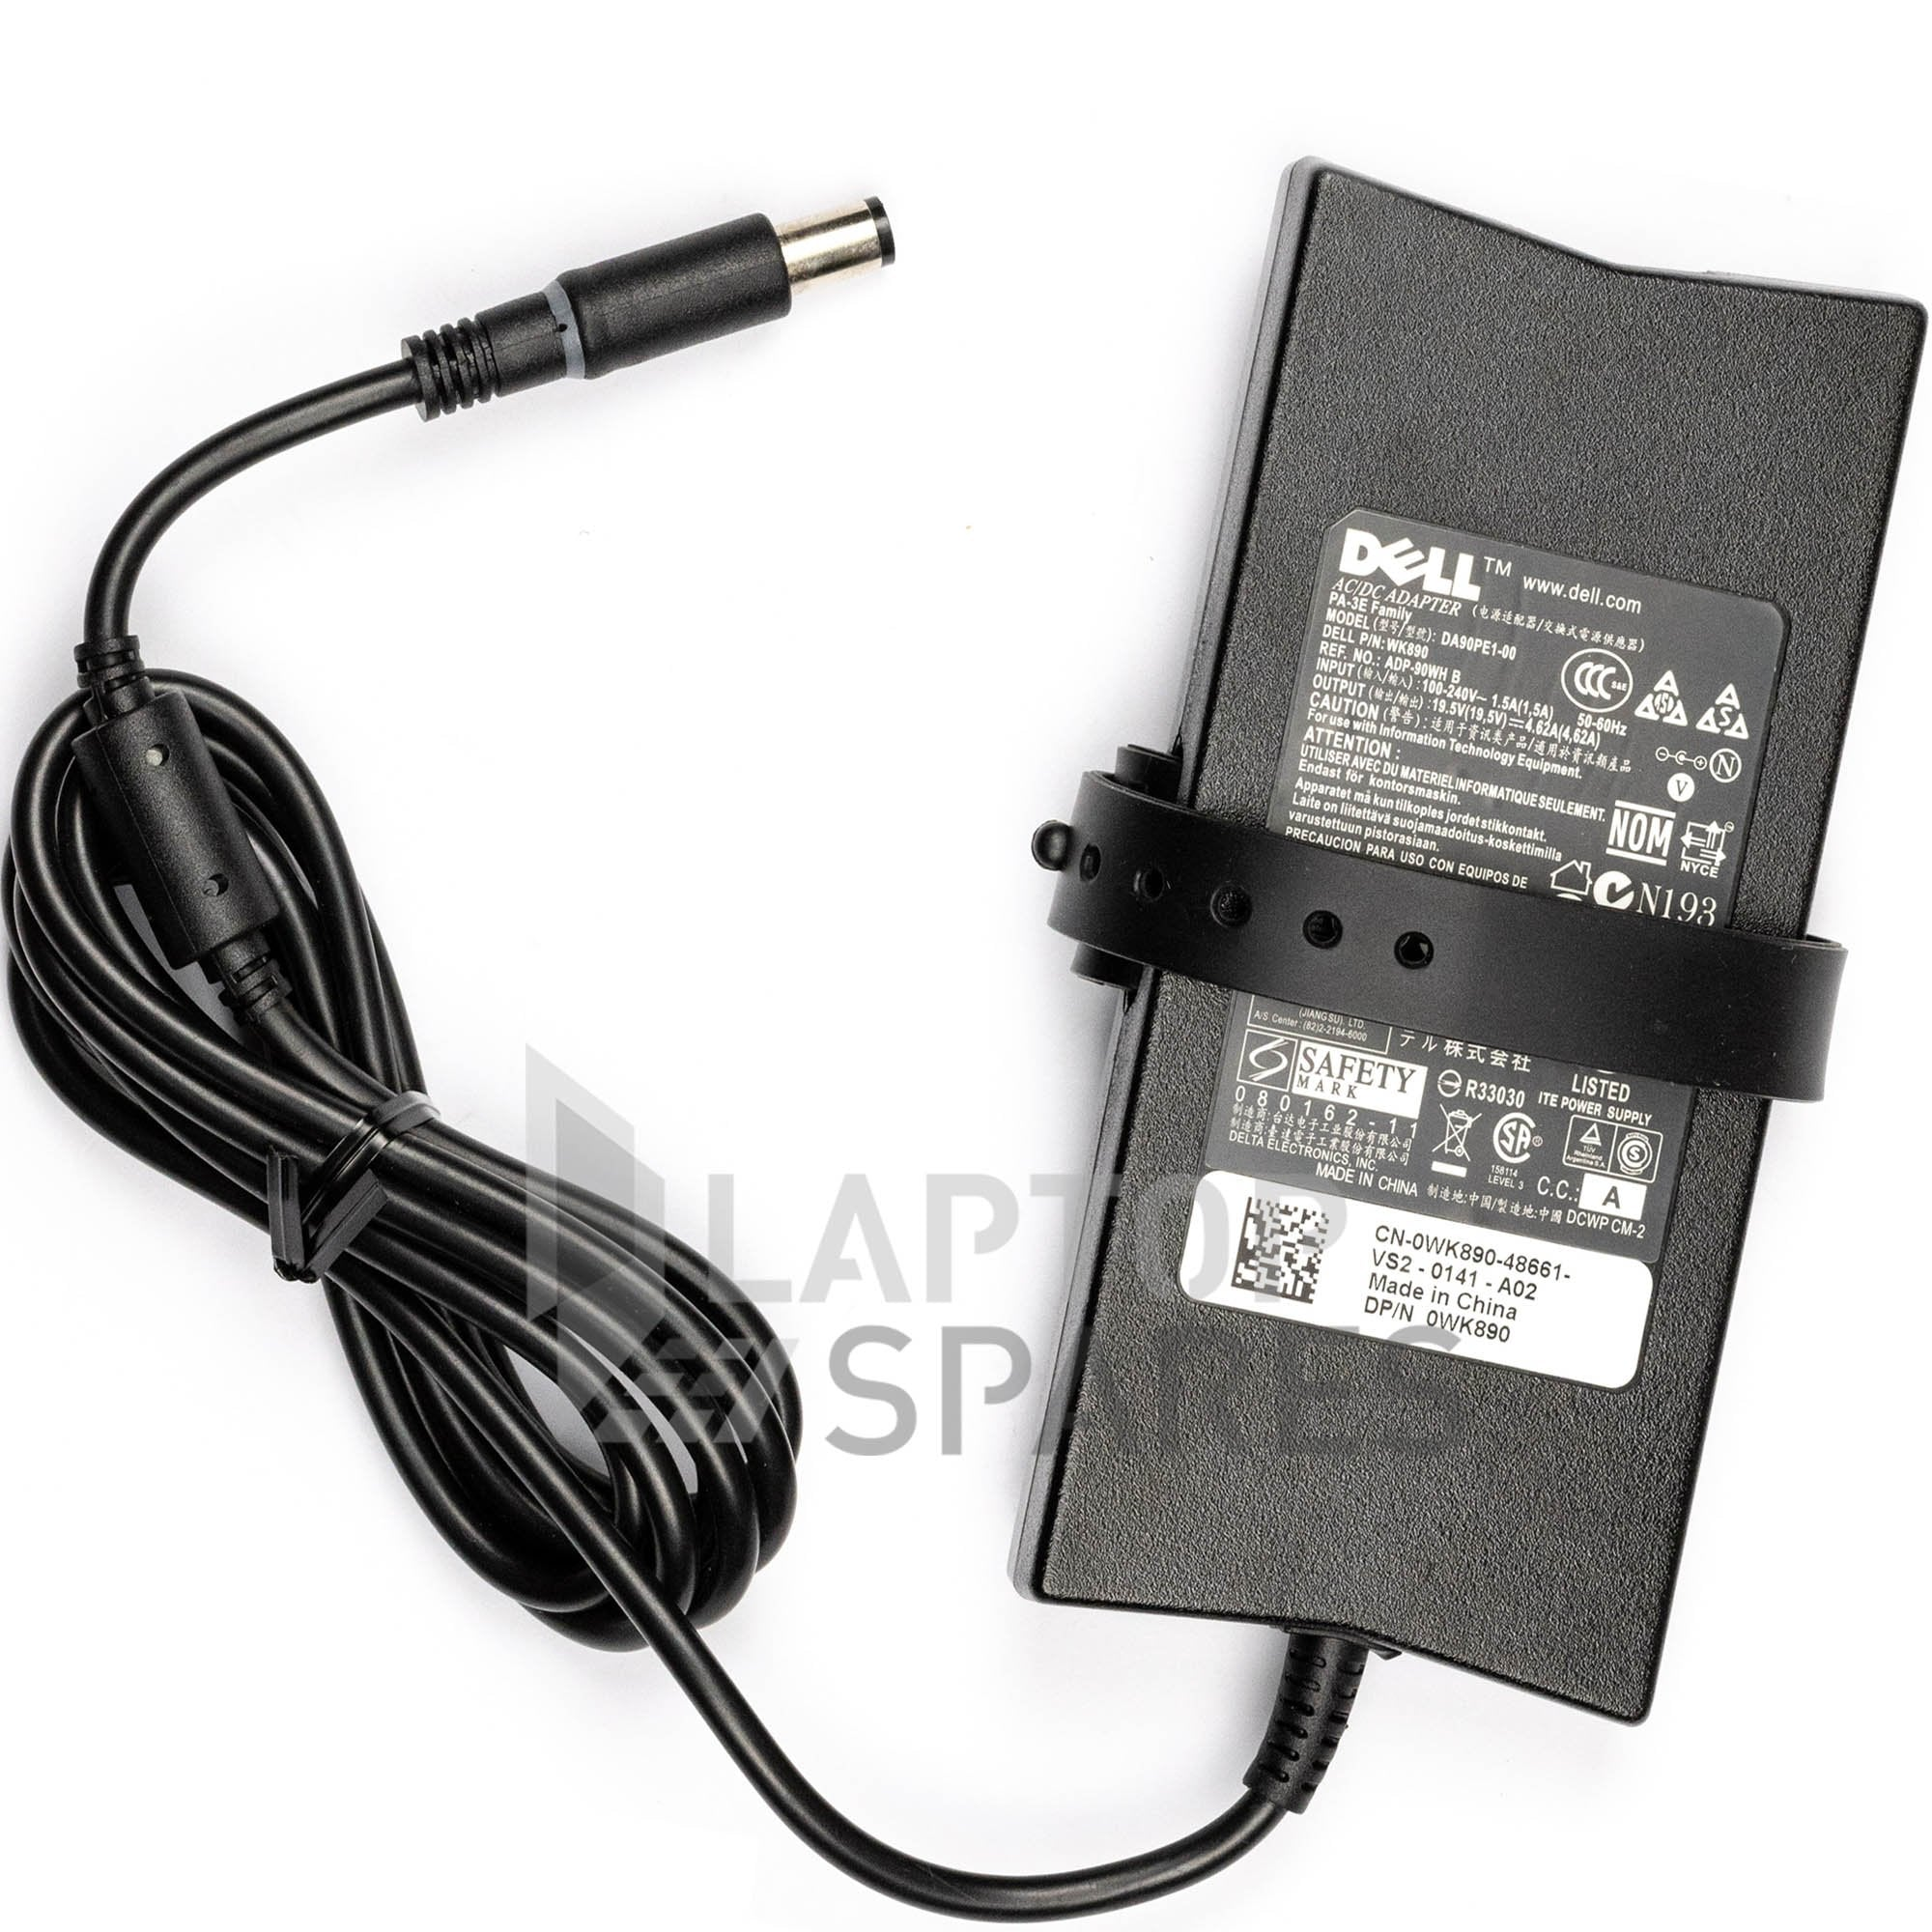 Dell Precision Mobile M4500 M4600 Laptop Slim AC Adapter Charger